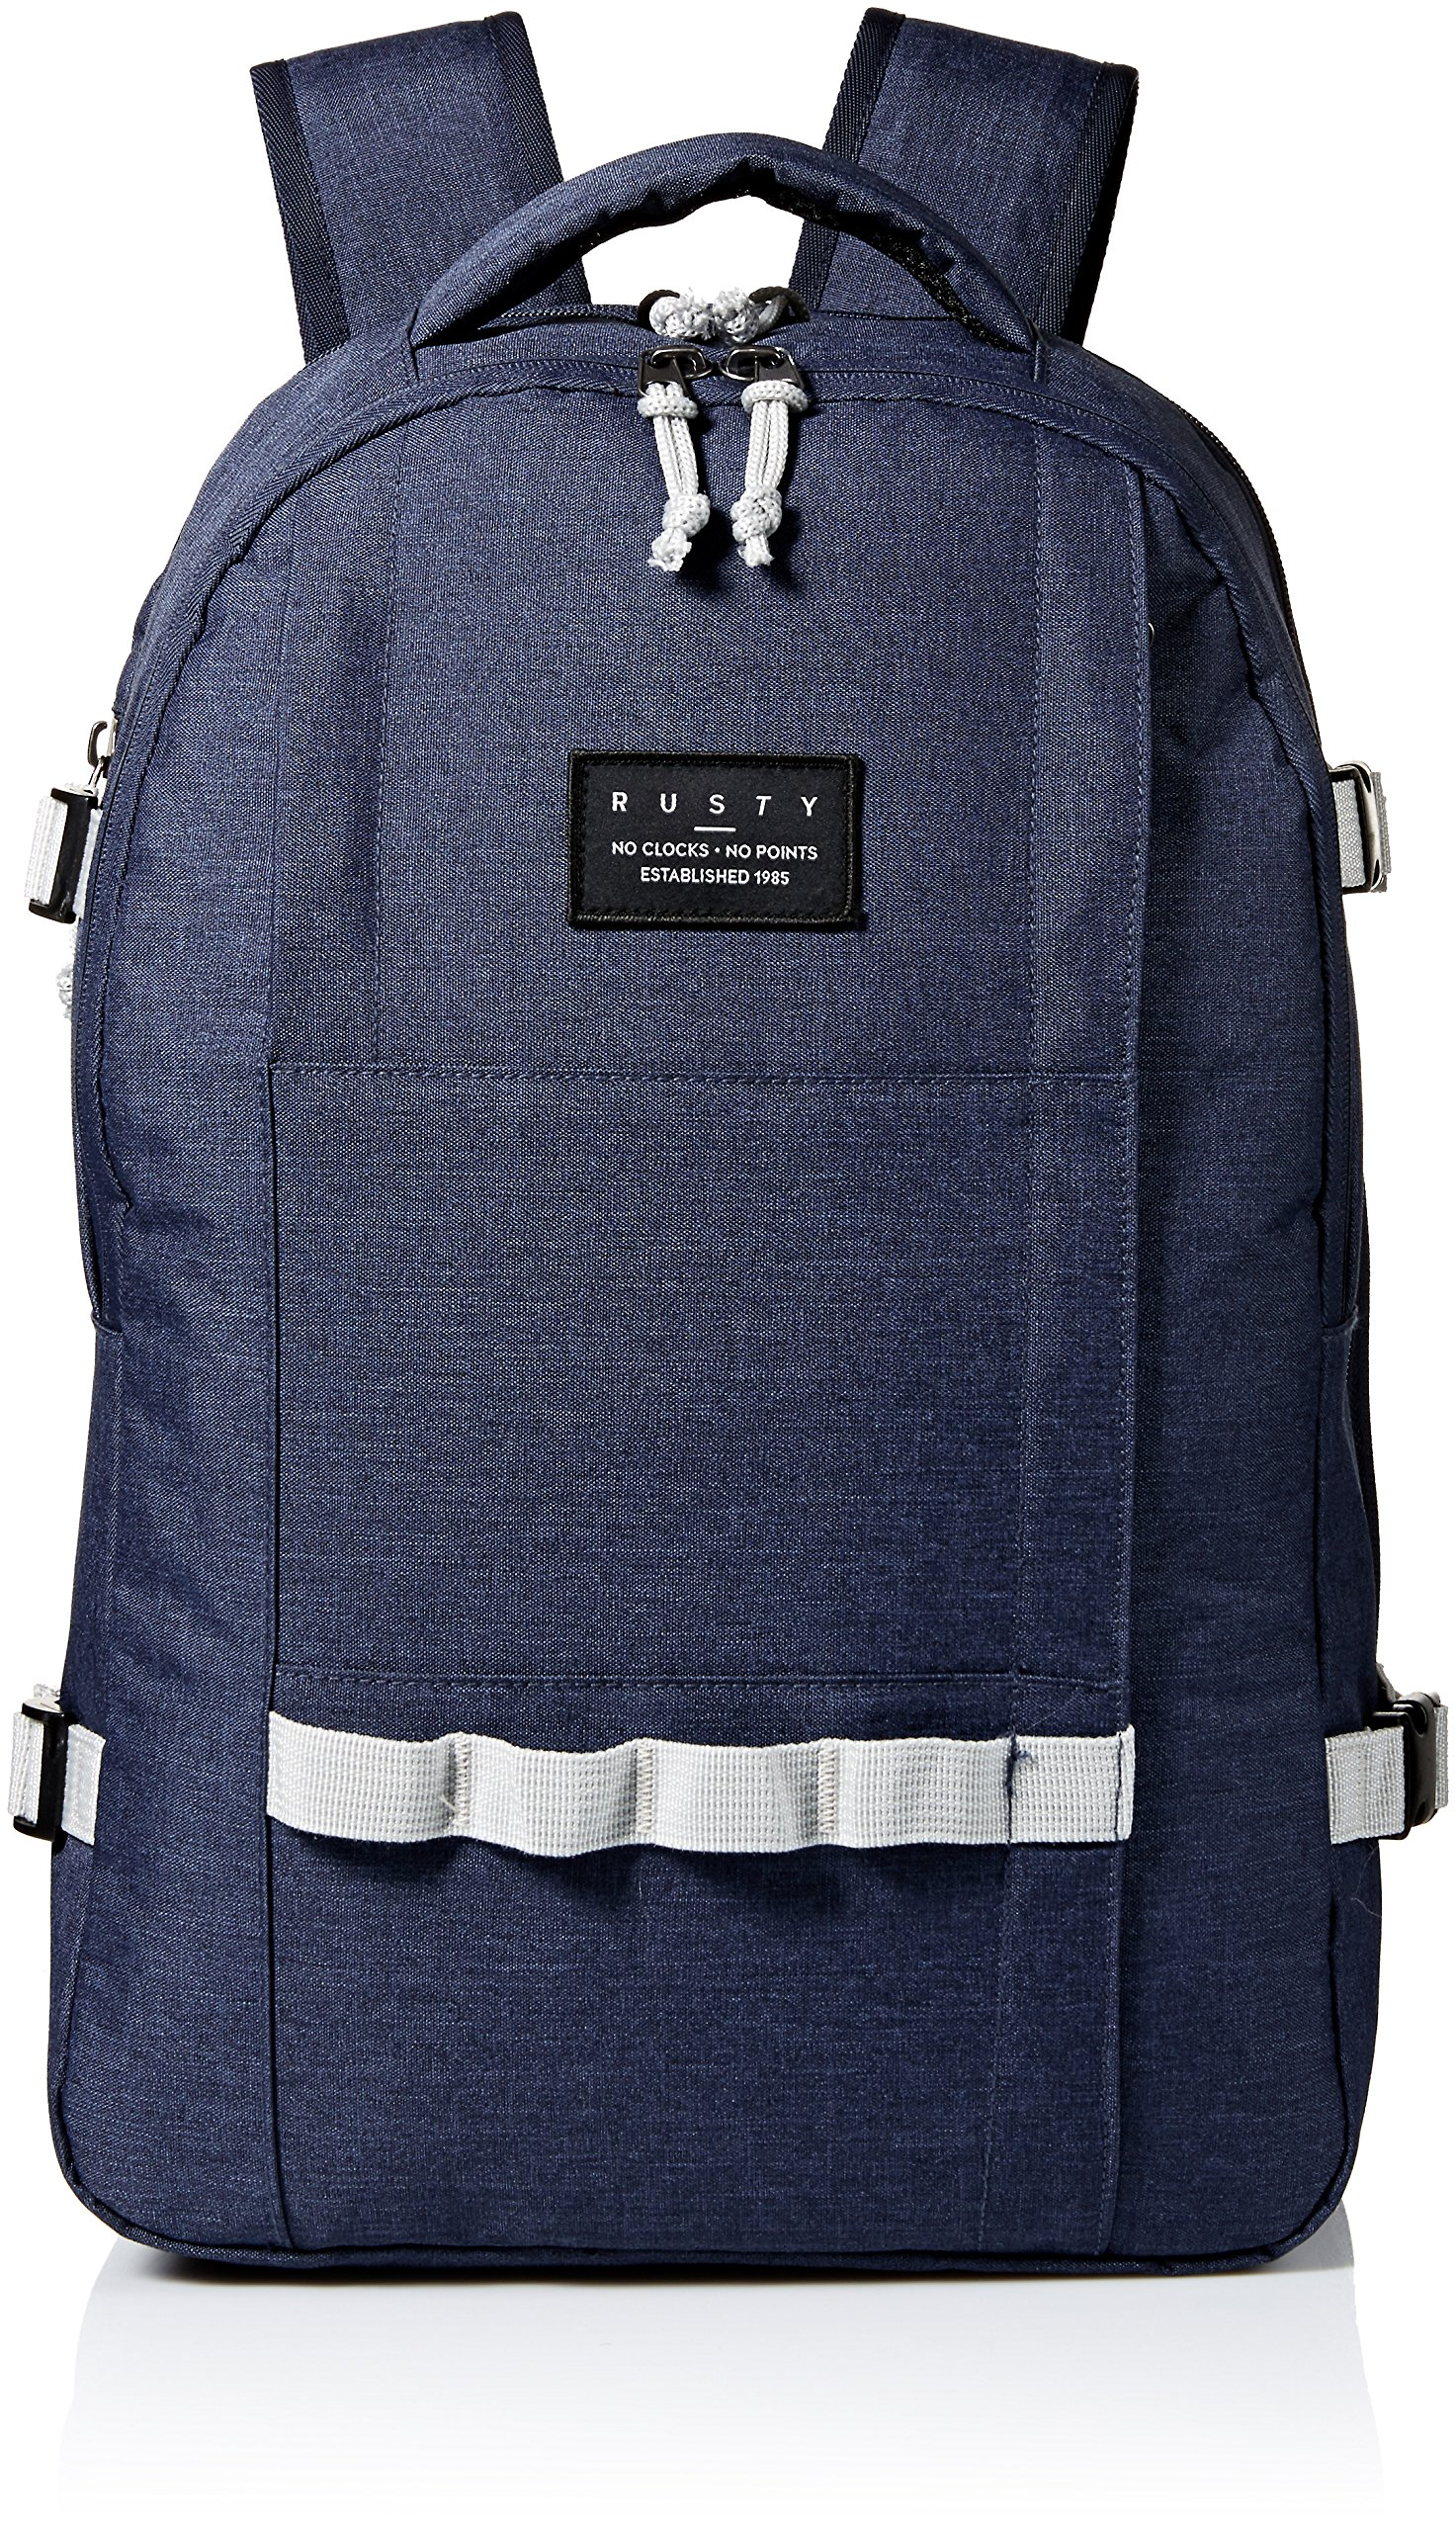 Rusty Men's Carry Me Backpack, blue marle, ONE